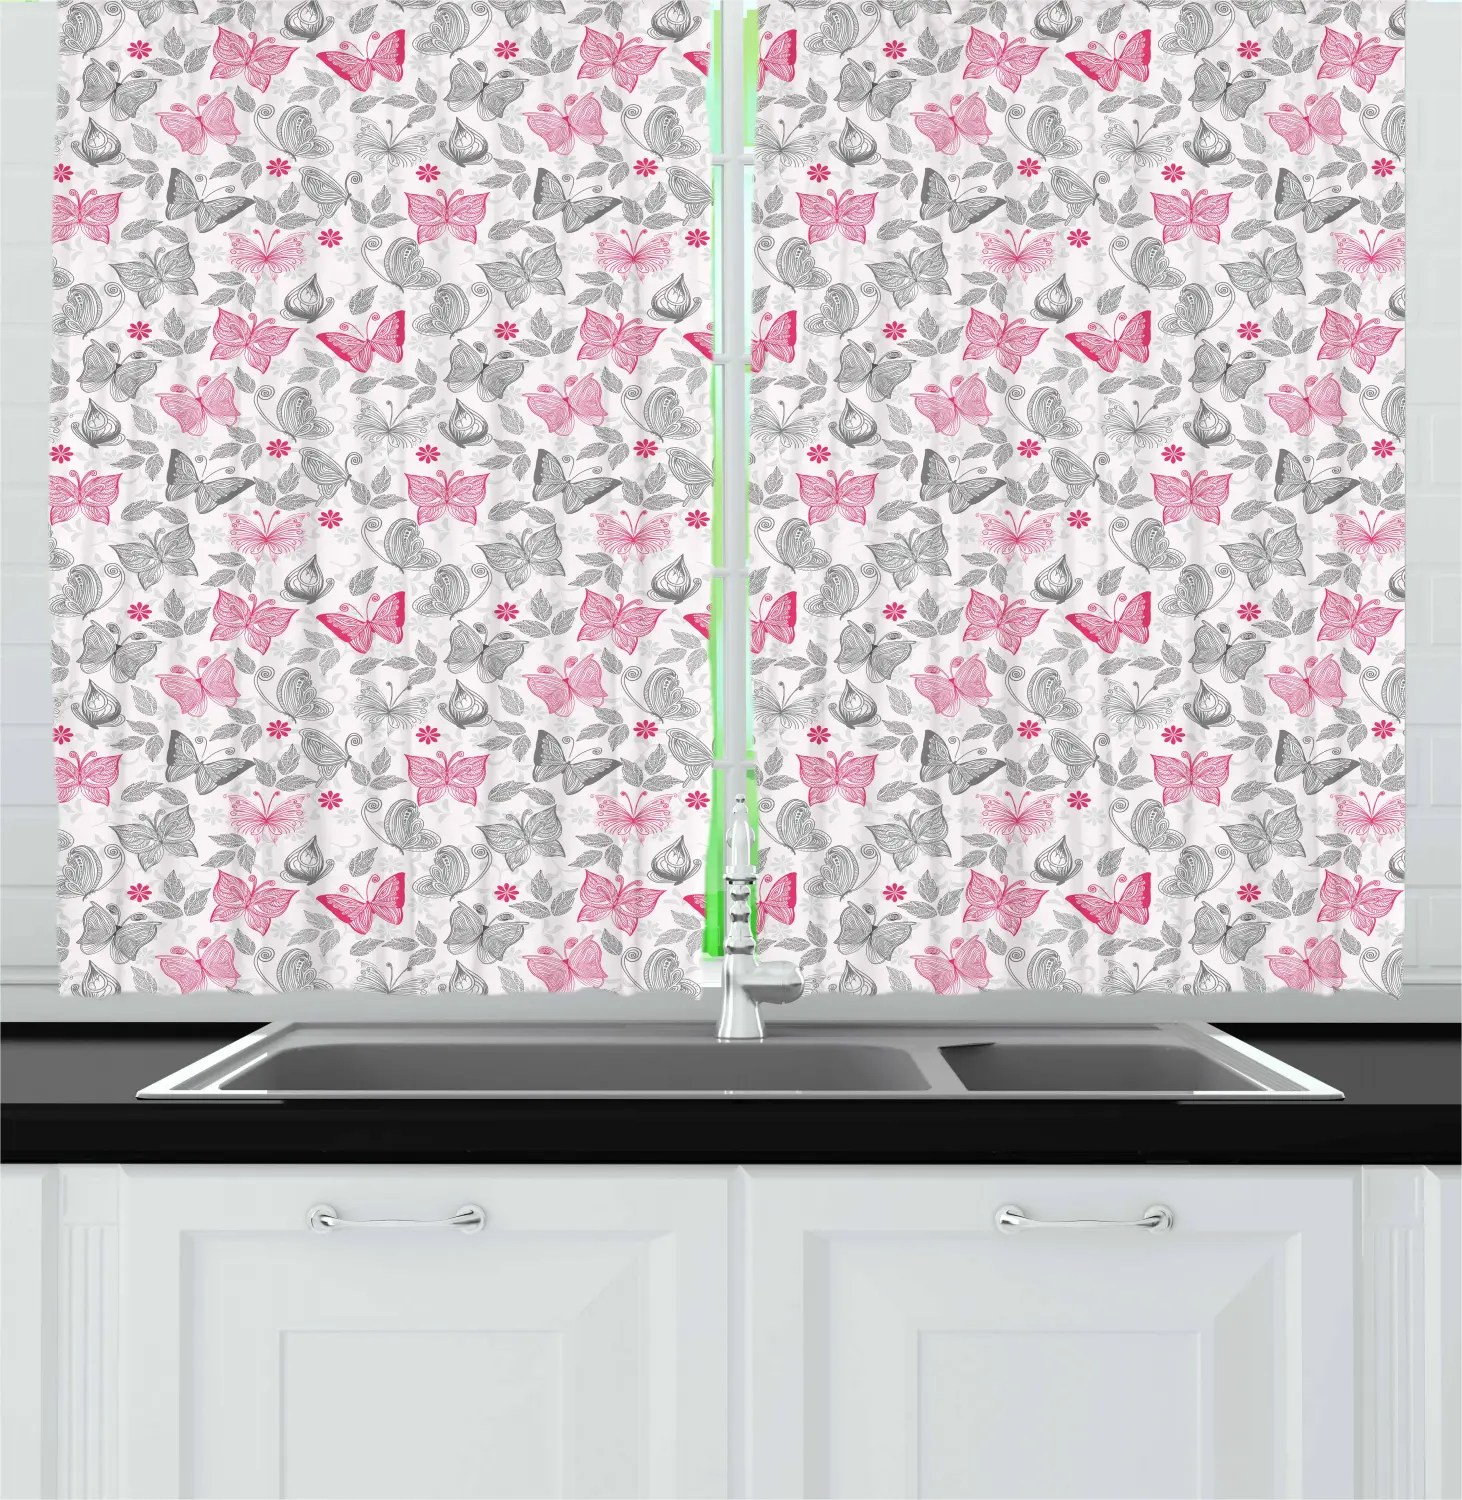 Butterfly Kitchen Curtains 2 Panel Set Window D S 55 X